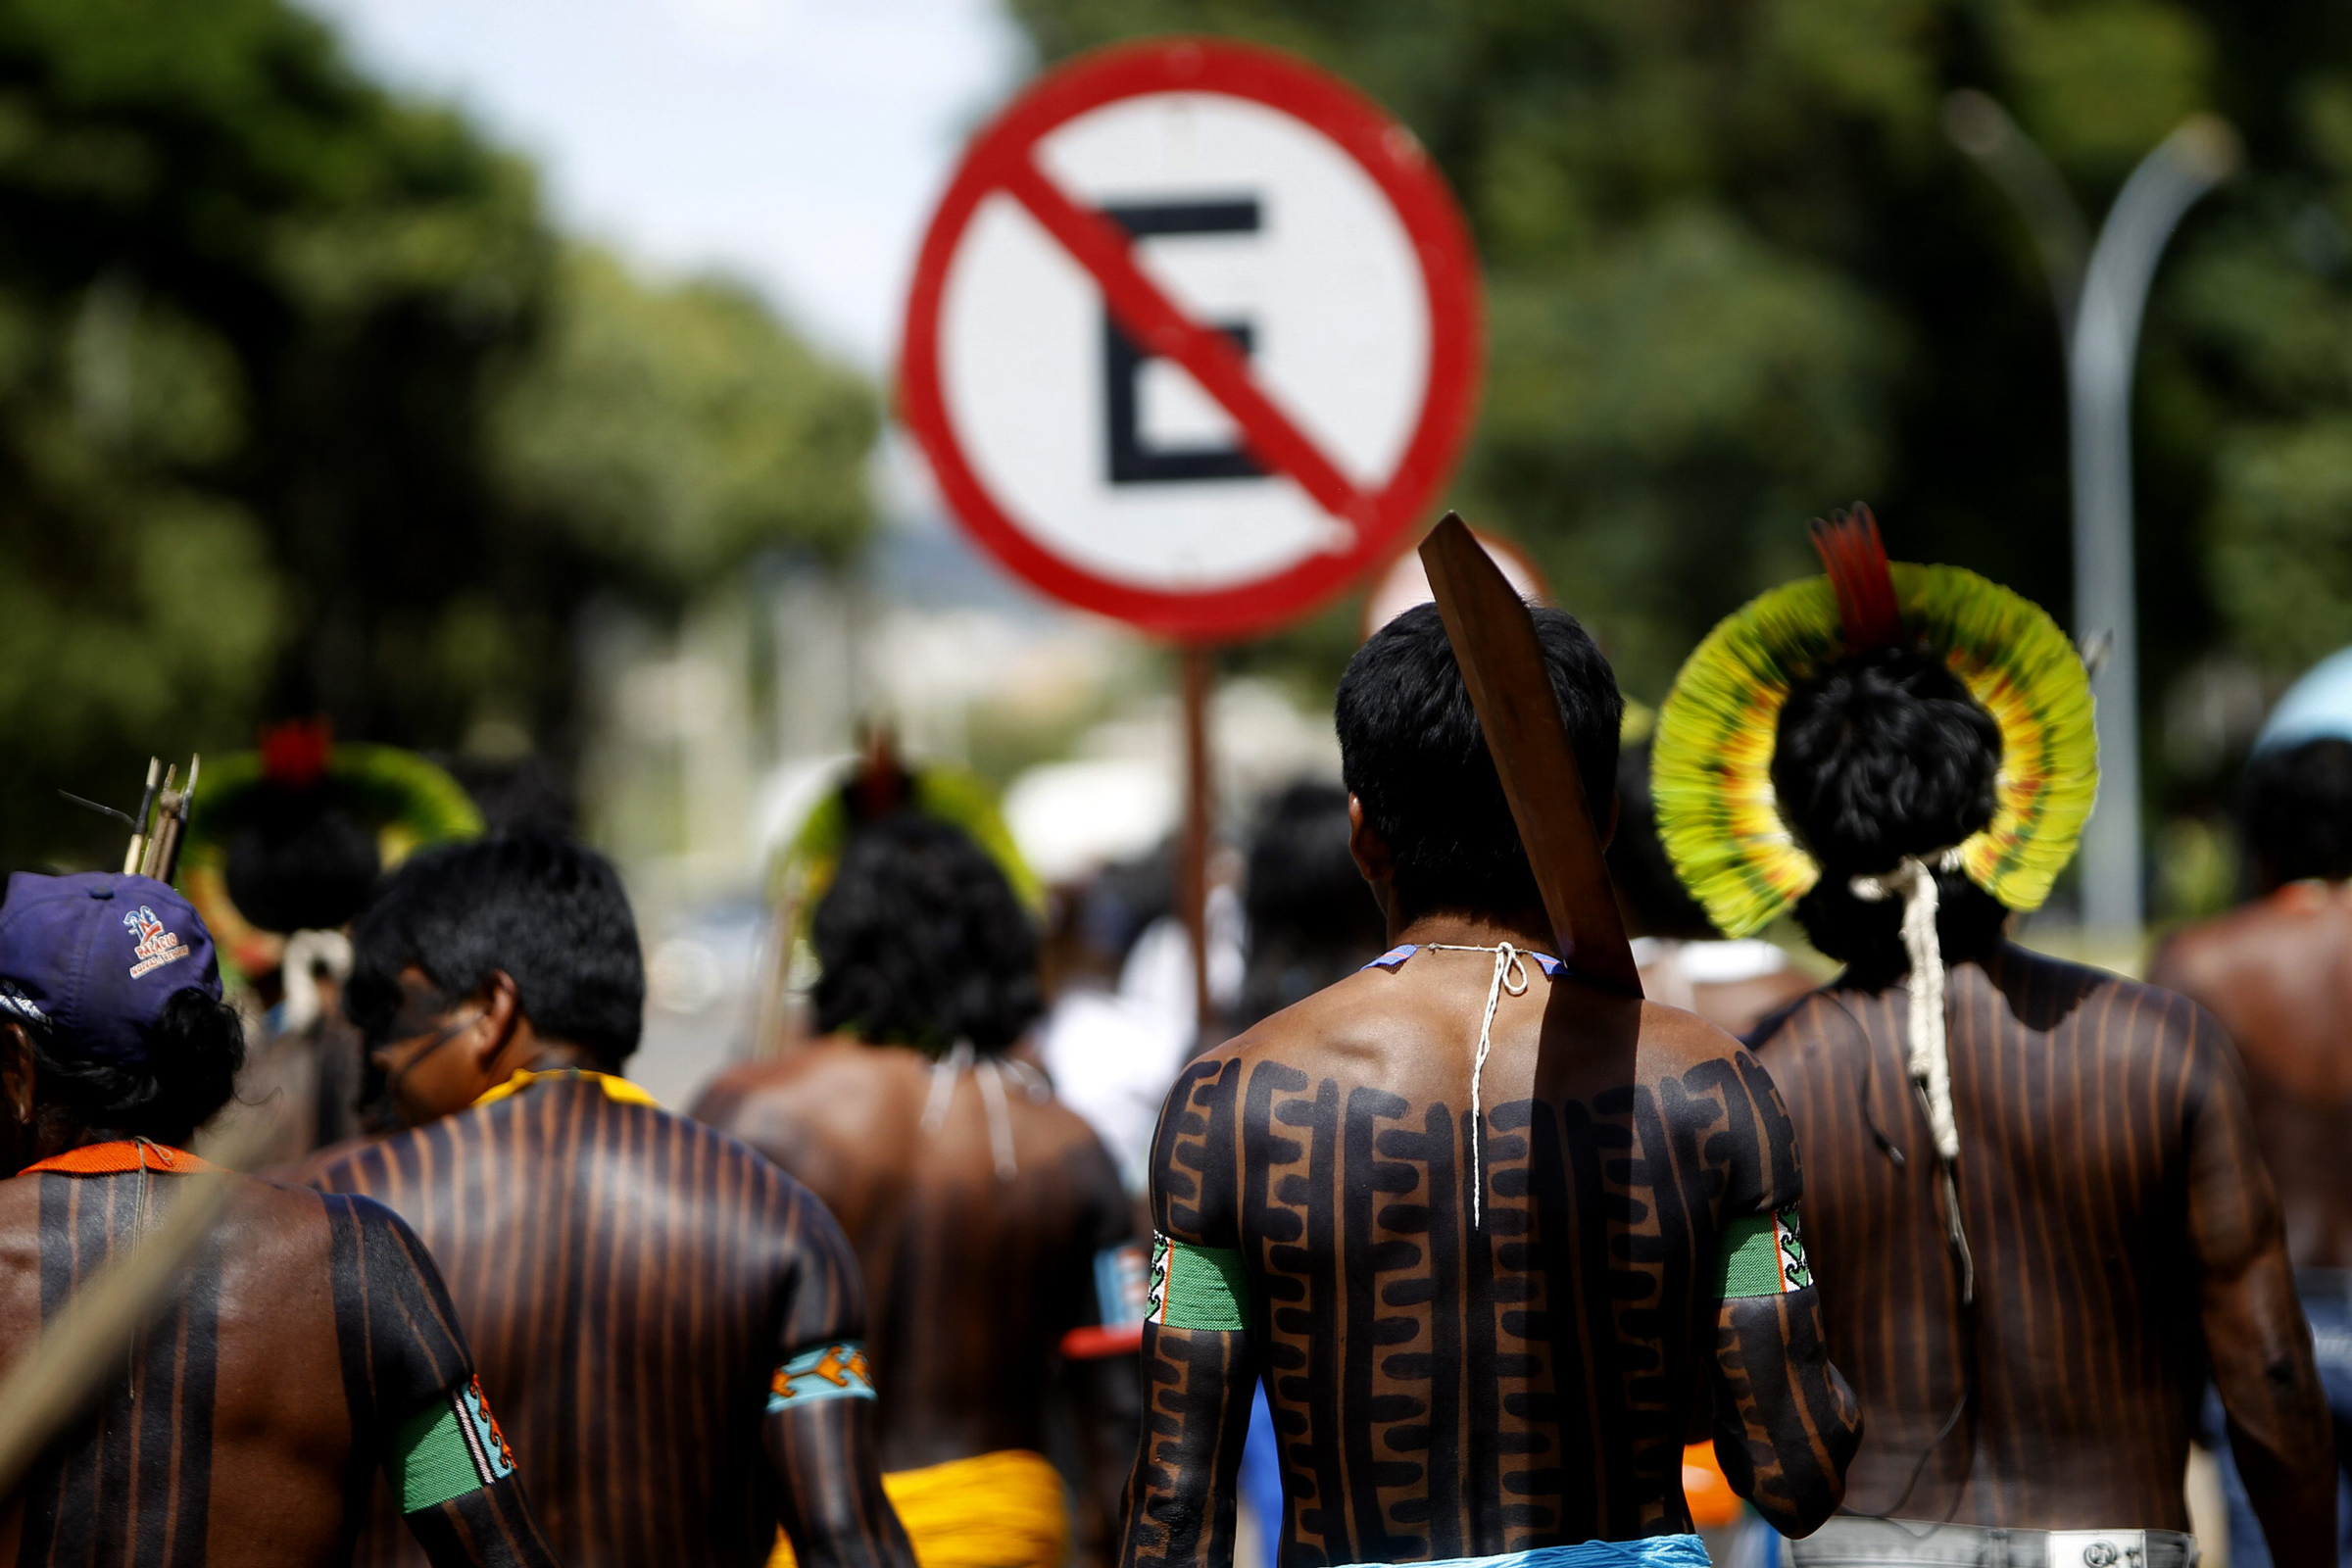 Members of the Indigenous Kayapo Ethnic Group Hold a Protest Against the Construction of the Br-163 Highway at Sourthern Para in Front of the Planalto Palace in Brasilia Brazil 02 February 2015 Br-163 is a Highway That Stretches For Over 4 000 Km From Santarem (para State) and Tenente Portela (rio Grande Do Sul State) Brazil BrasiliaBrazil Protests - Feb 2015